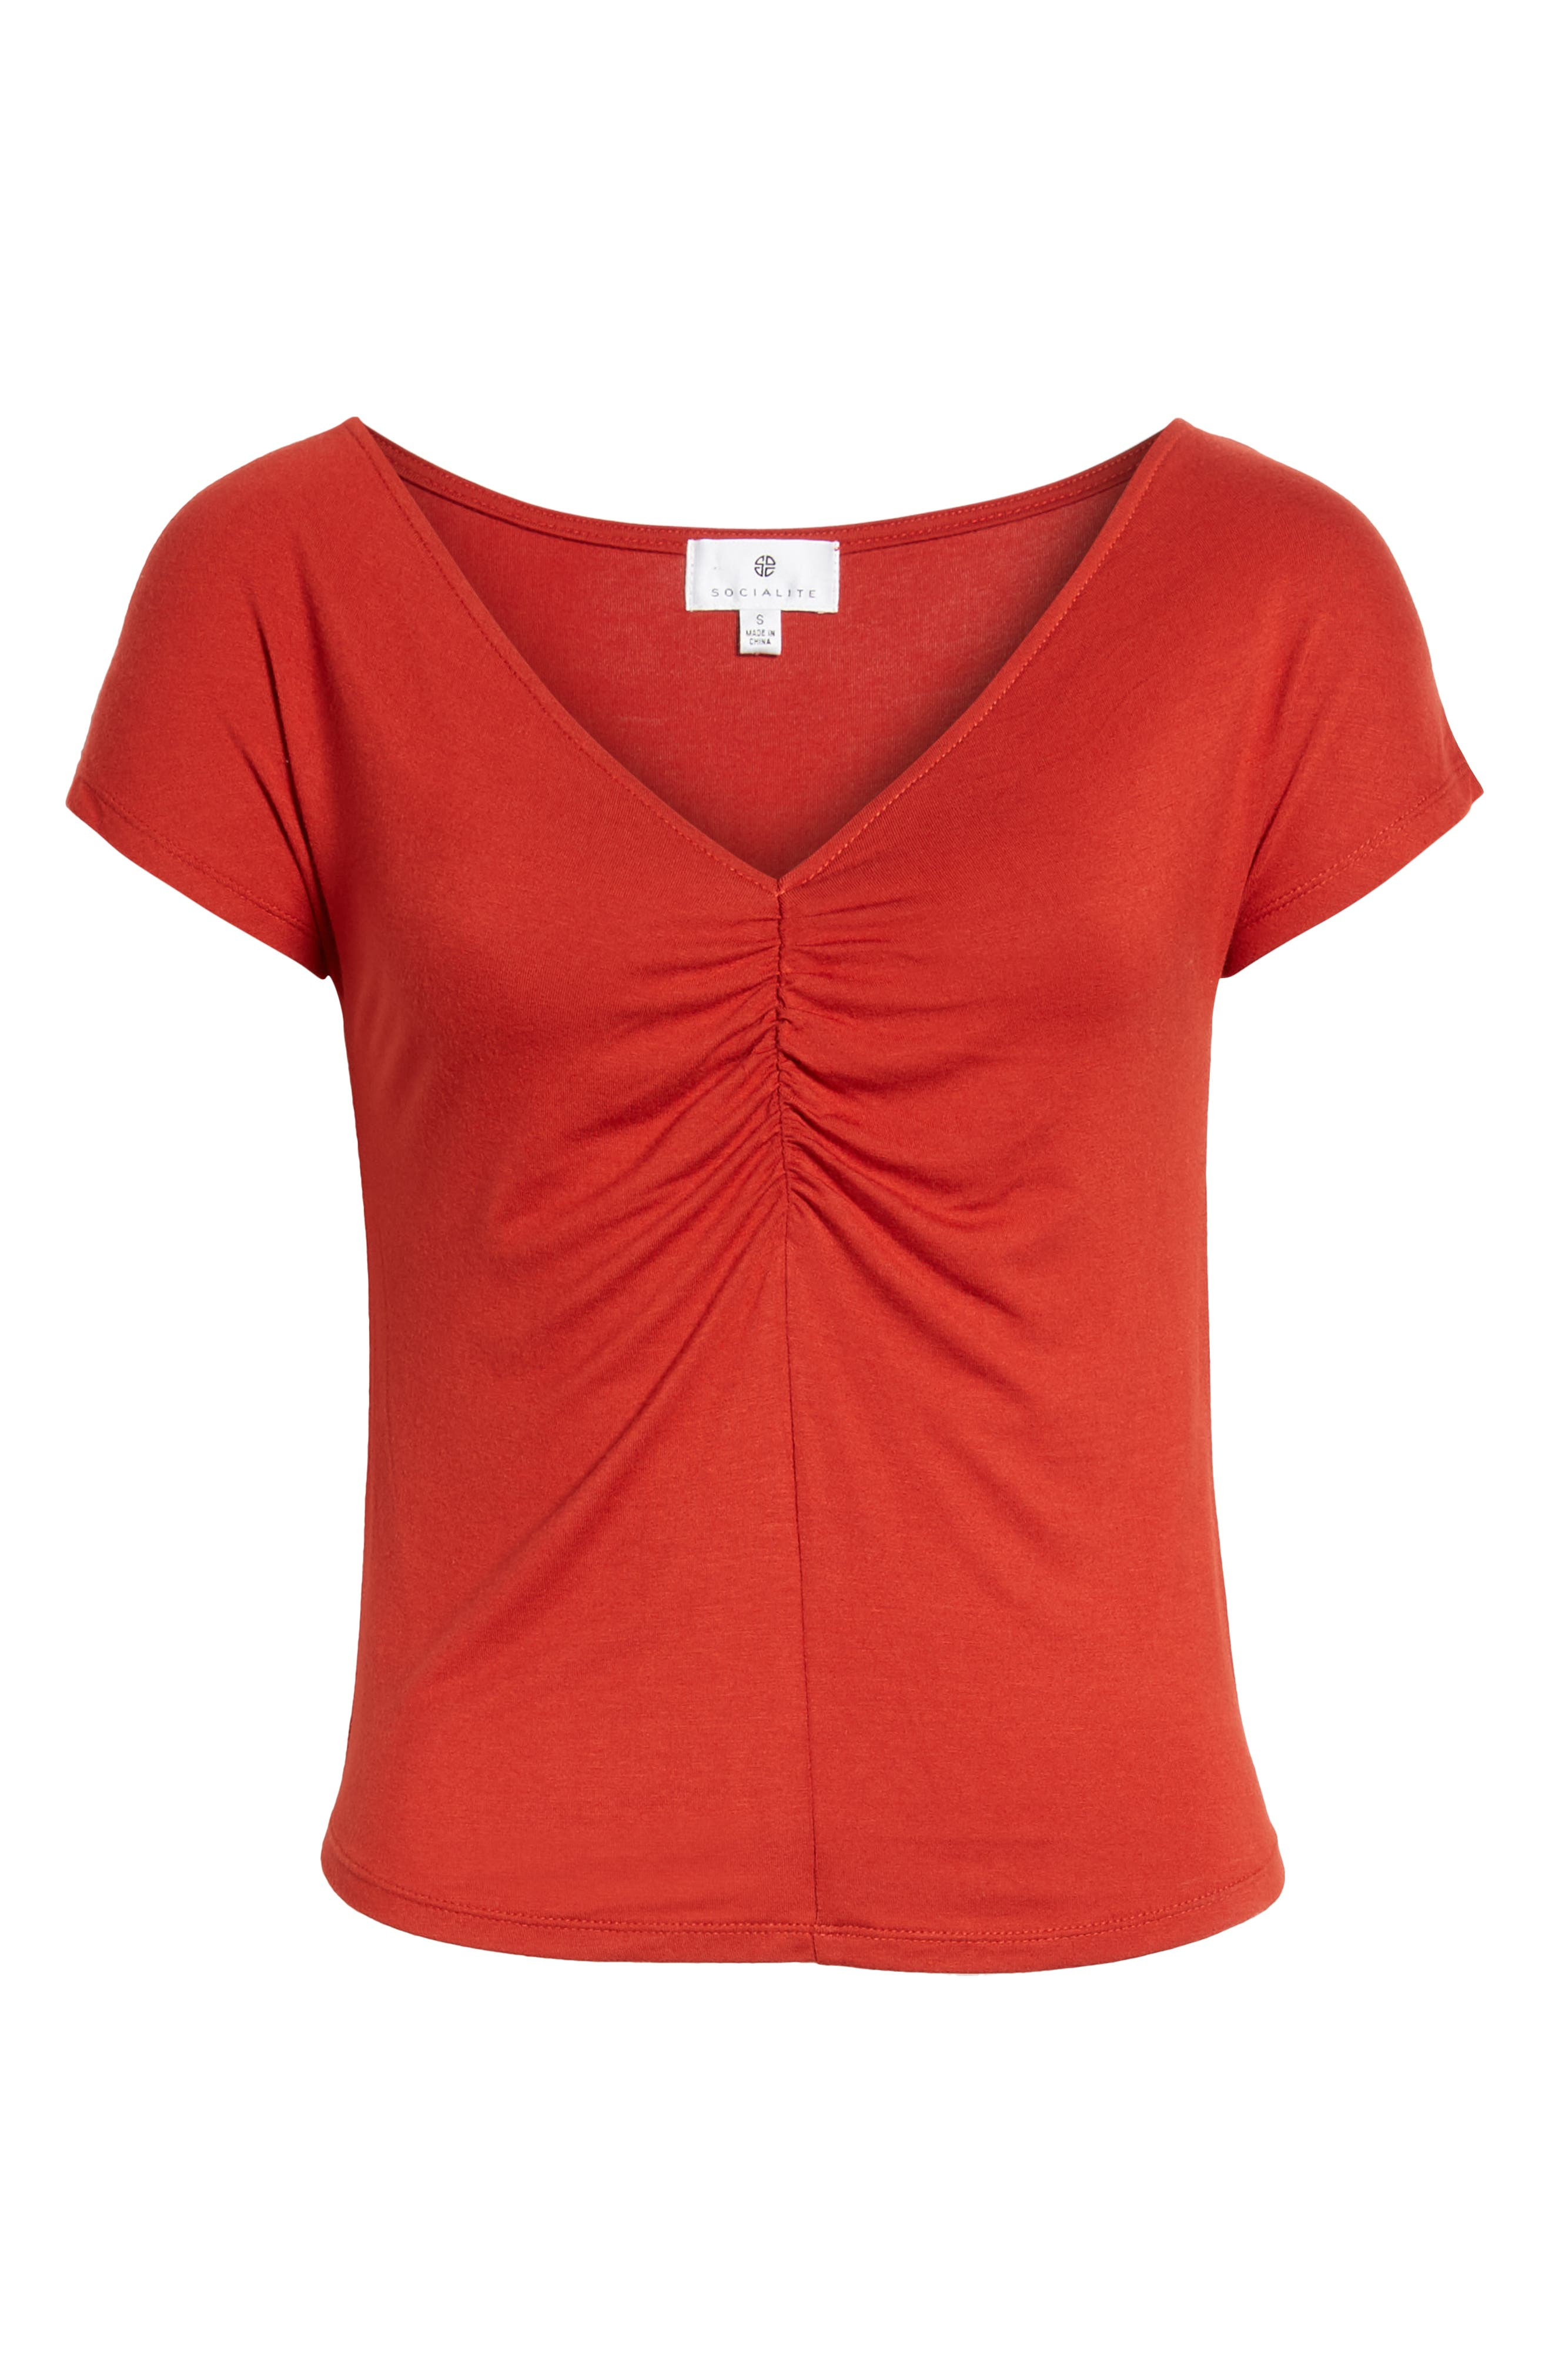 Cinch Front Tee,                             Alternate thumbnail 7, color,                             Red